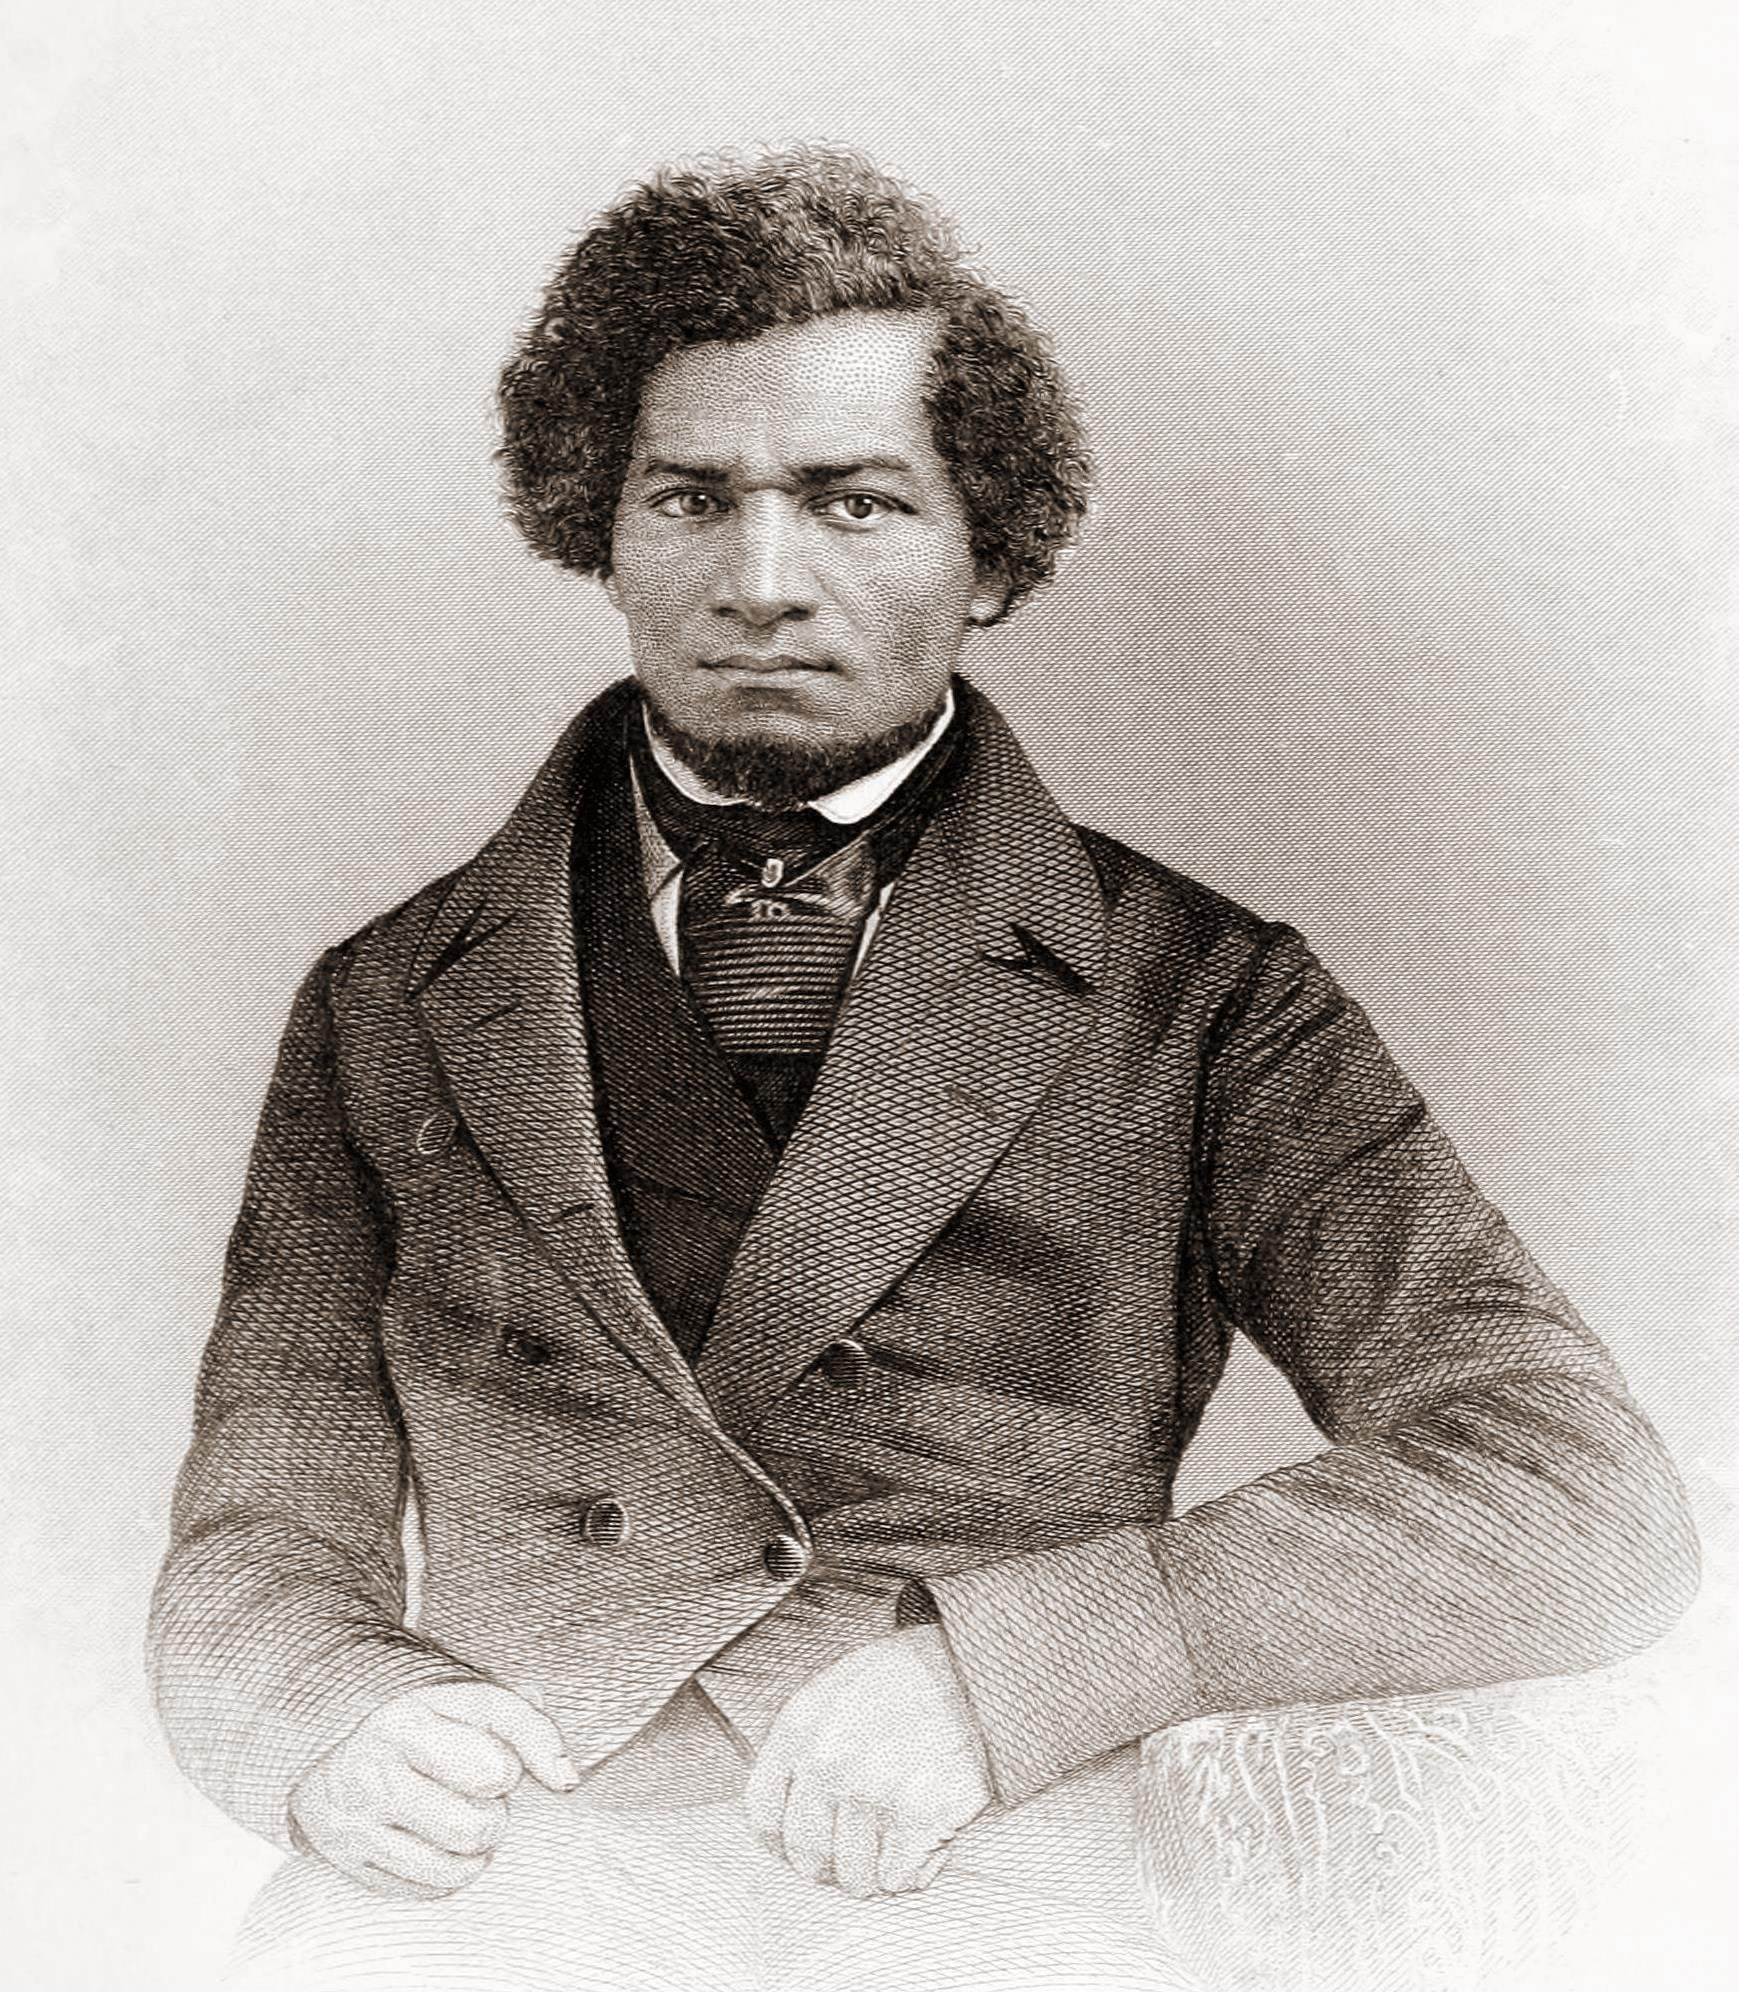 a biography of frederick douglass an african american abolitionist social reformer orator writer and Frederick augustus washington baily was an abolitionist, social reformer, statesman, writer, and orator he was born a slave in 1818 in talbot county, maryland, on the eastern shore of chesapeake bay.